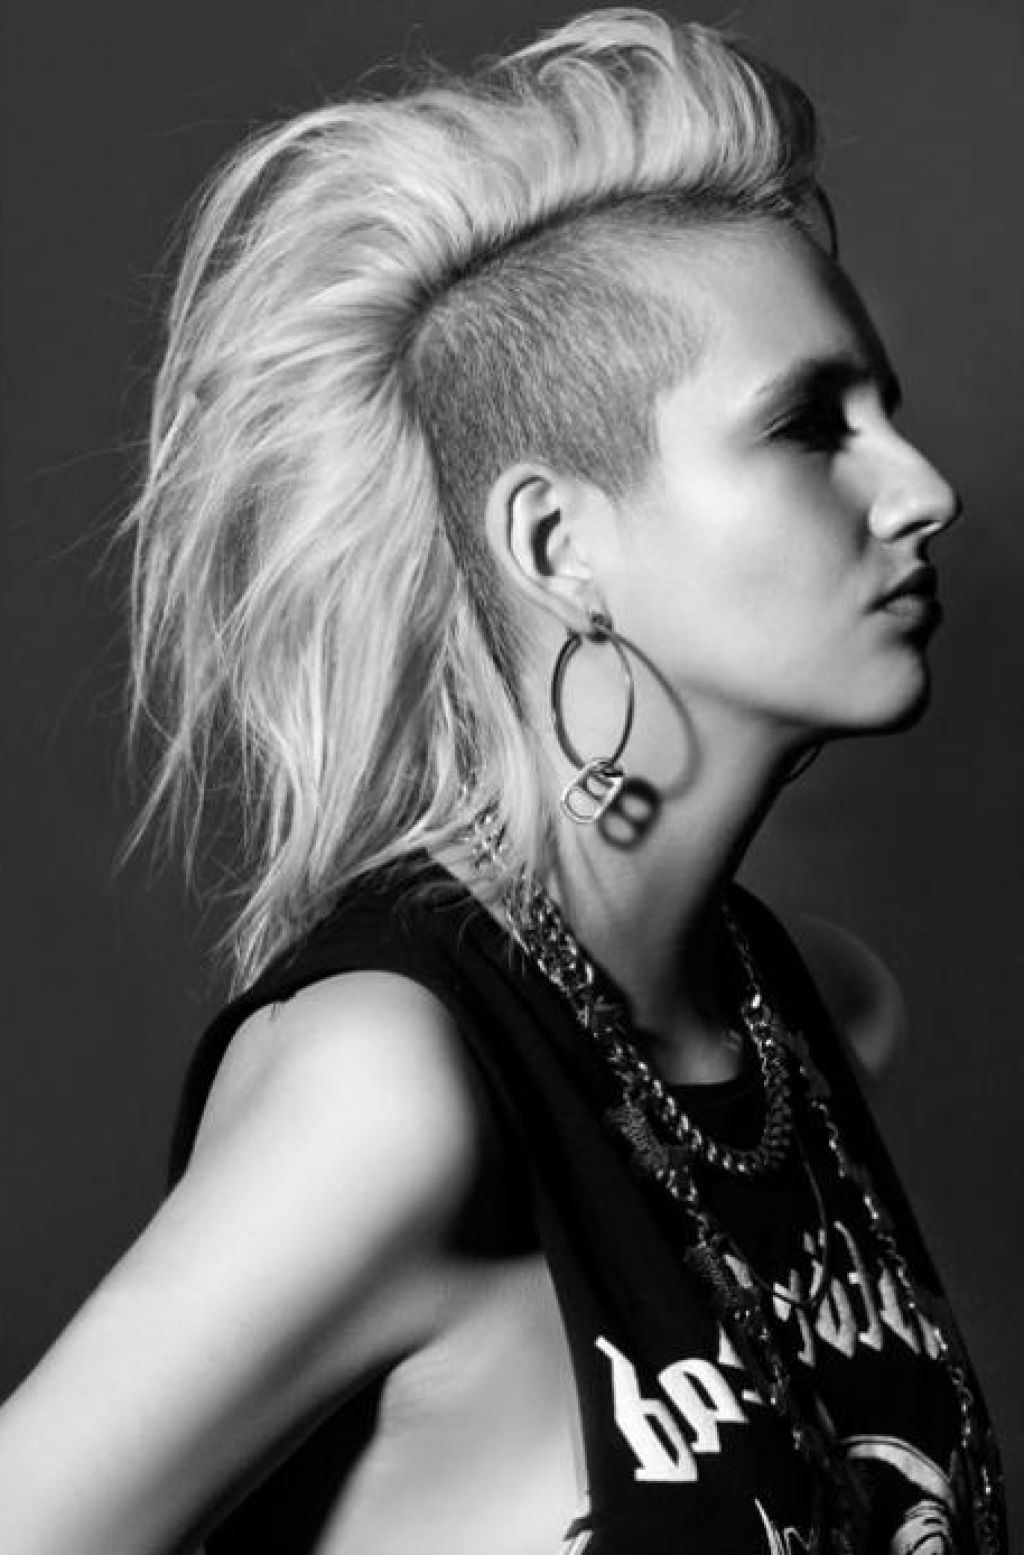 punk hairstyles are not only for punk bands : simple hairstyle ideas